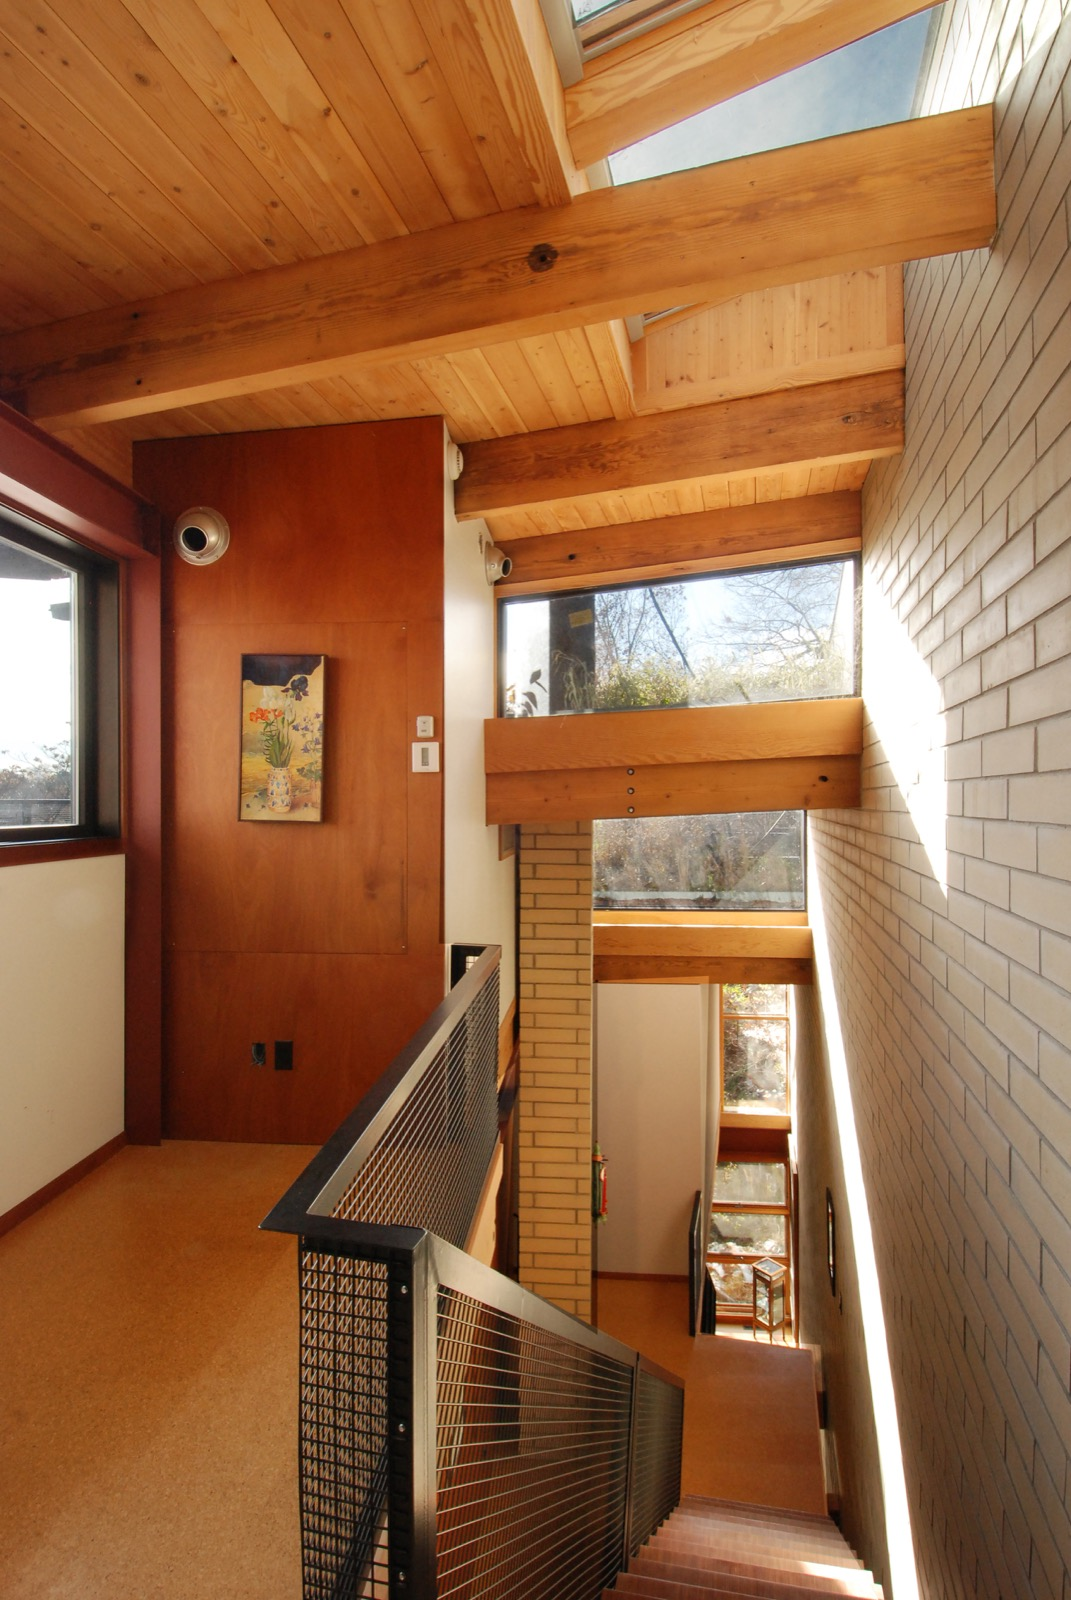 The staircase is open to the outdoors with clerestory windows revealing the Green Roof